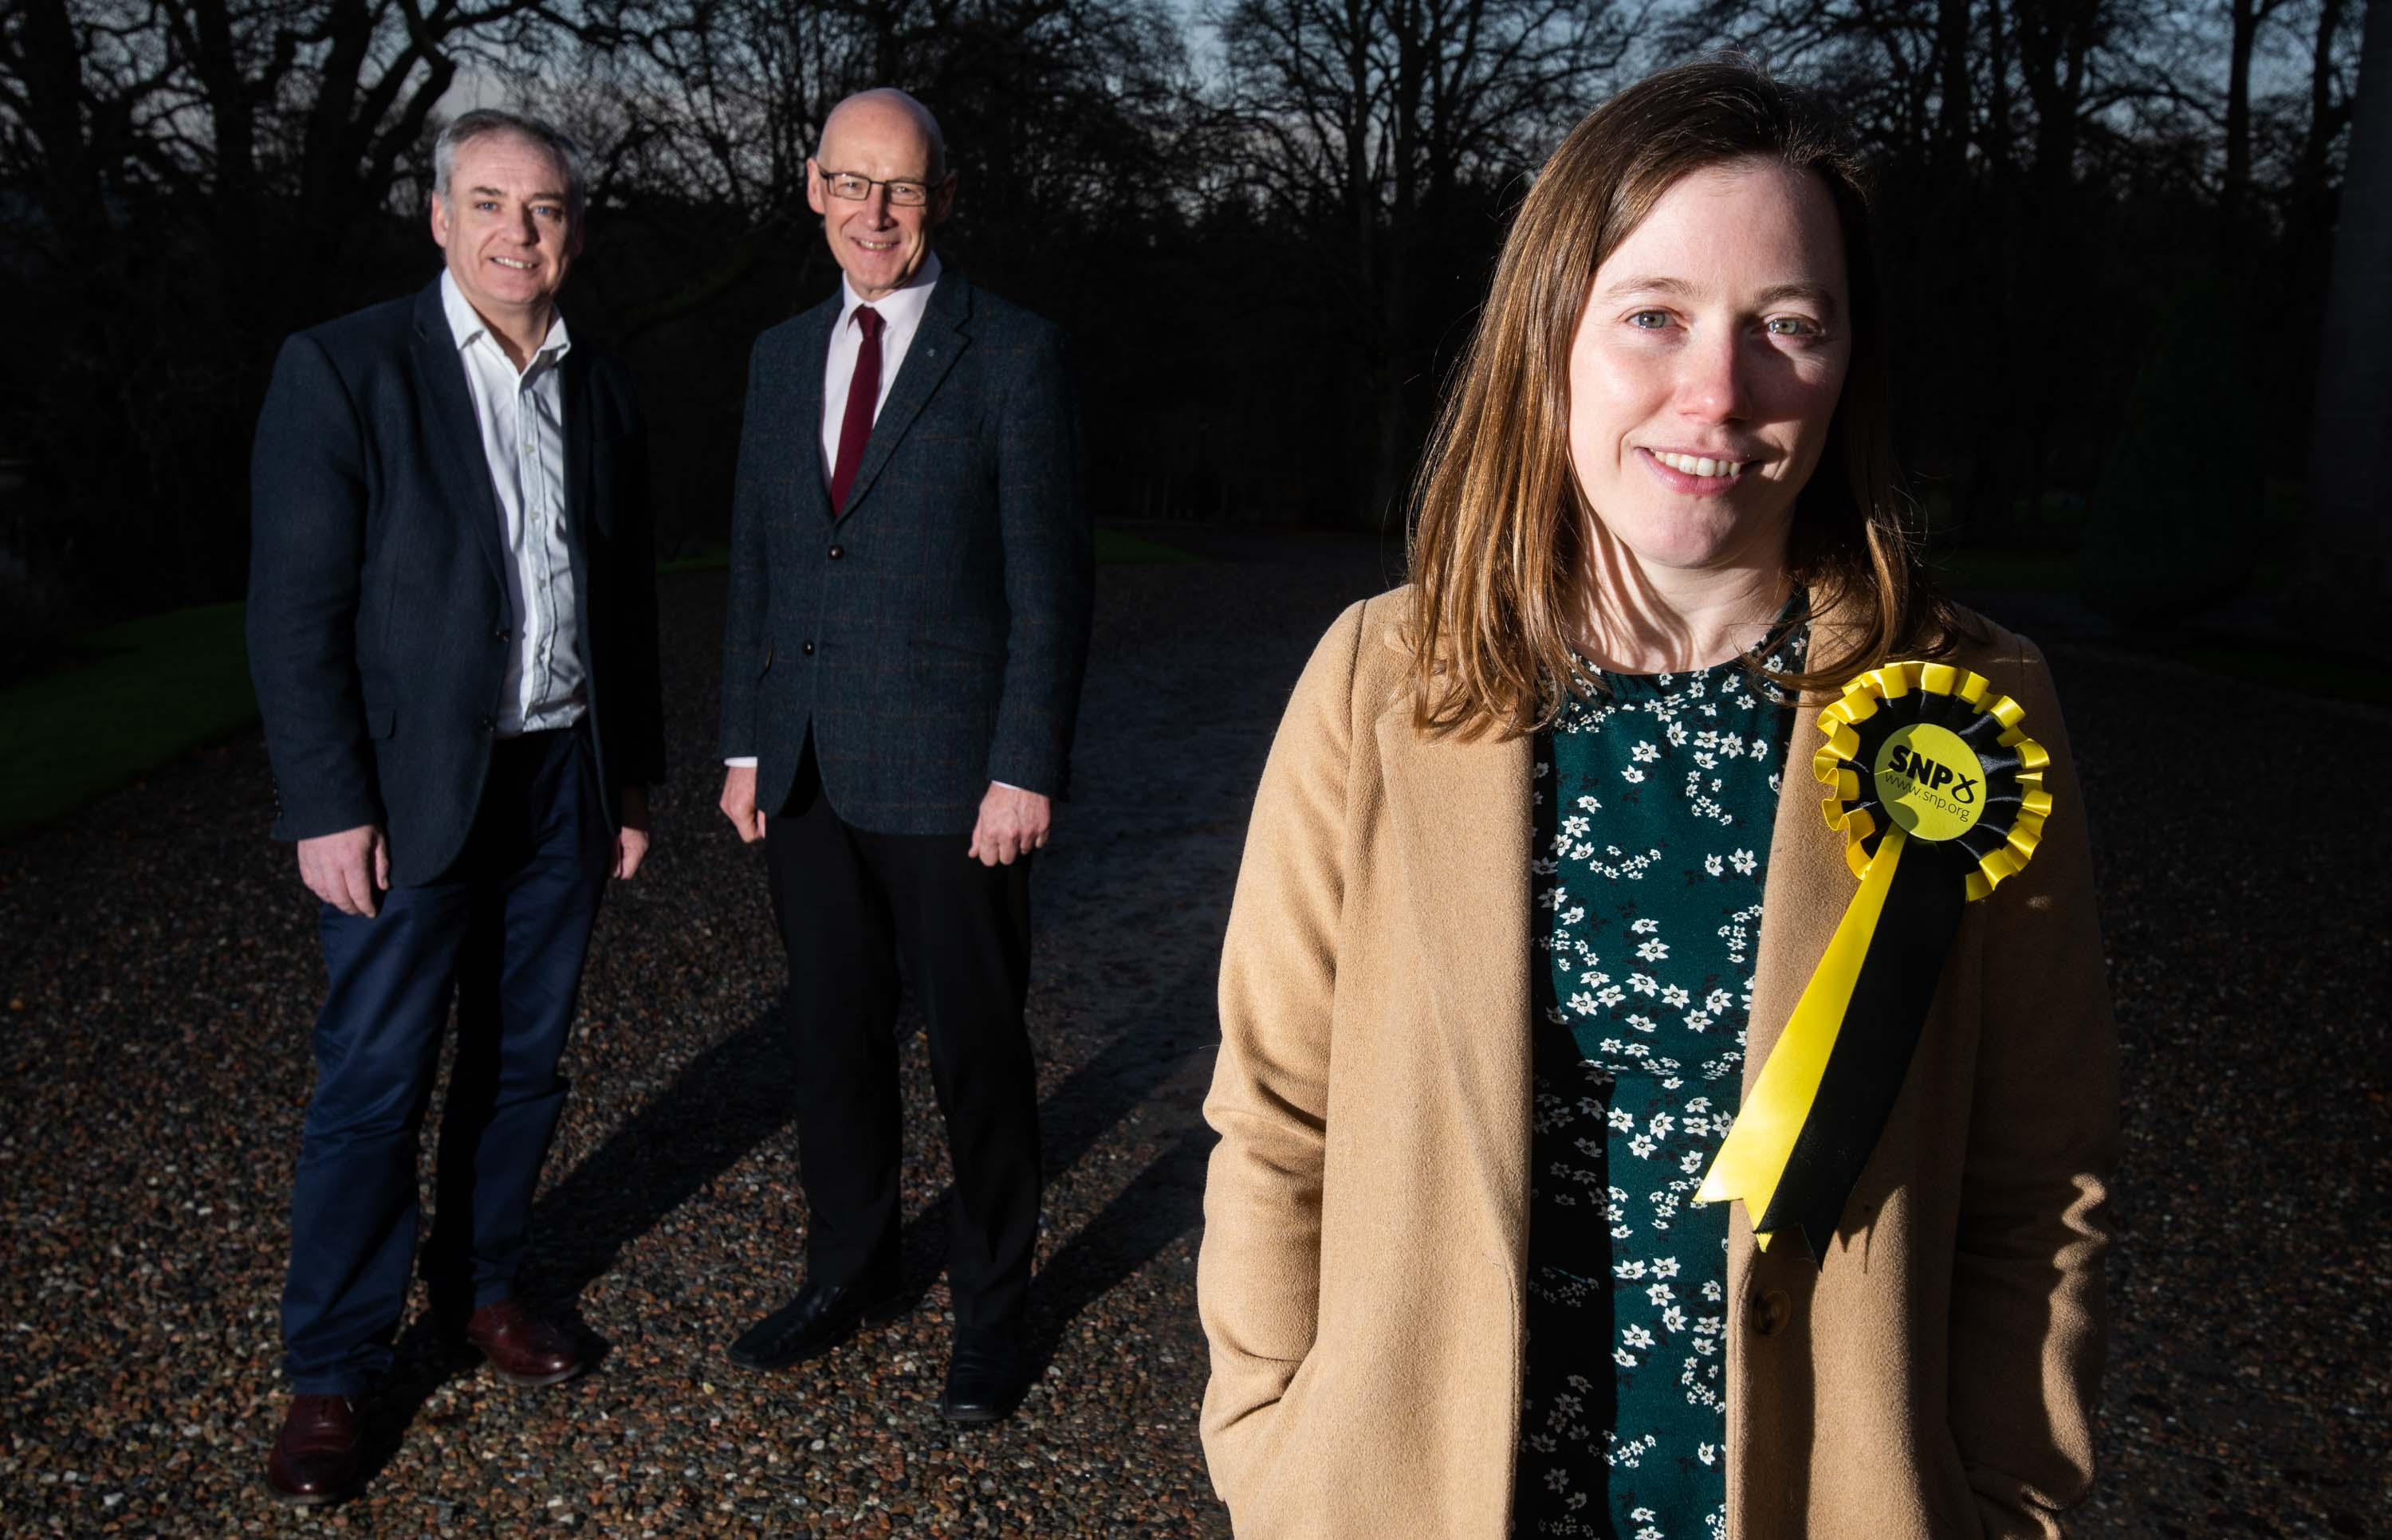 The SNP's Moray candidate Laura Mitchell, pictured right, with Moray MSP Richard Lochhead and John Swinney, Depute First Minister of Scotland.